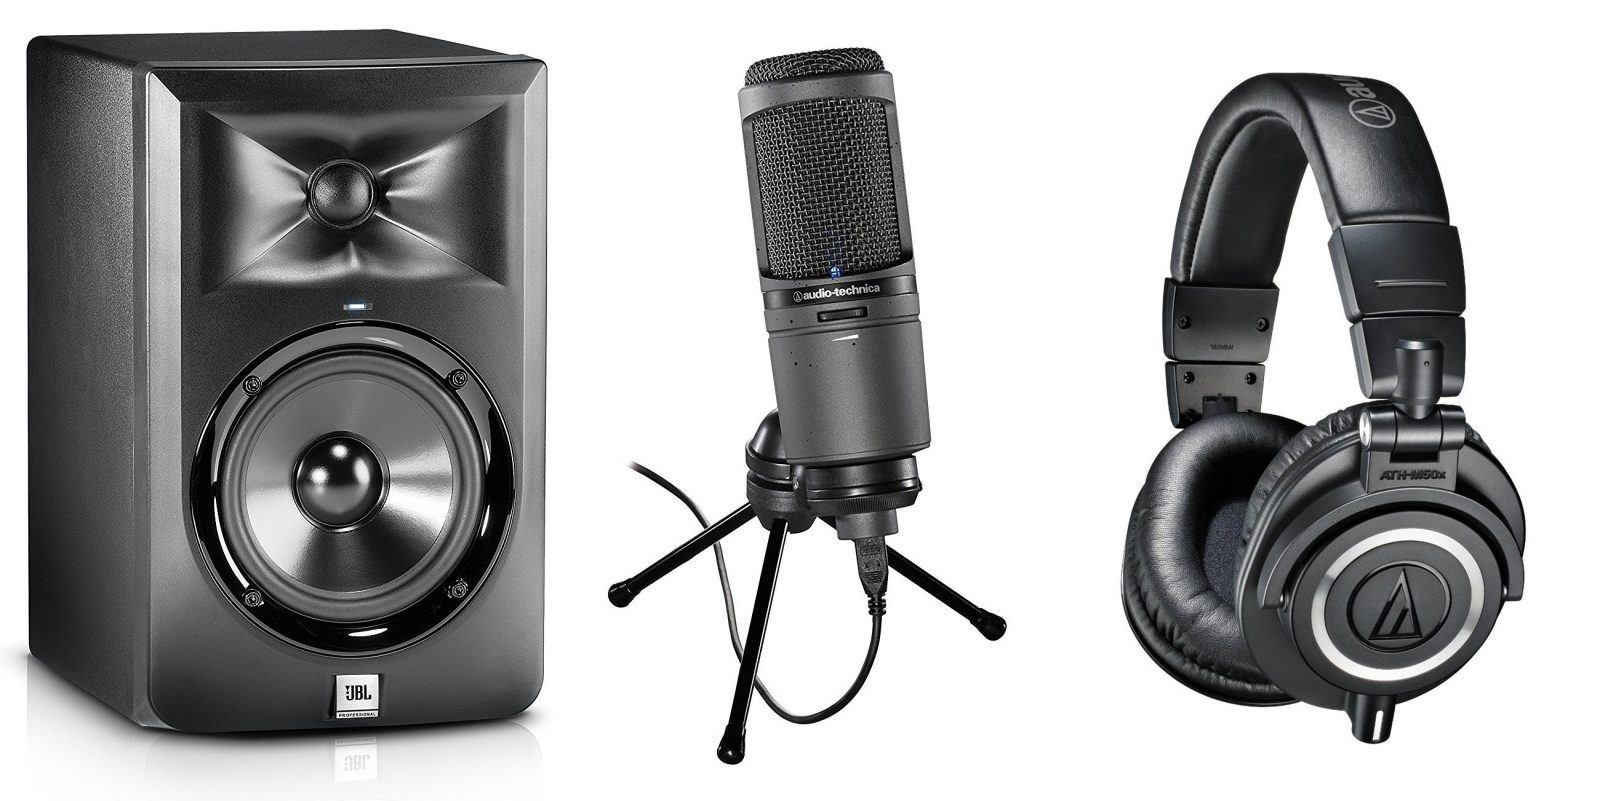 Prime Day Music Production gear up to 35% off: mics, headphones, guitars, more